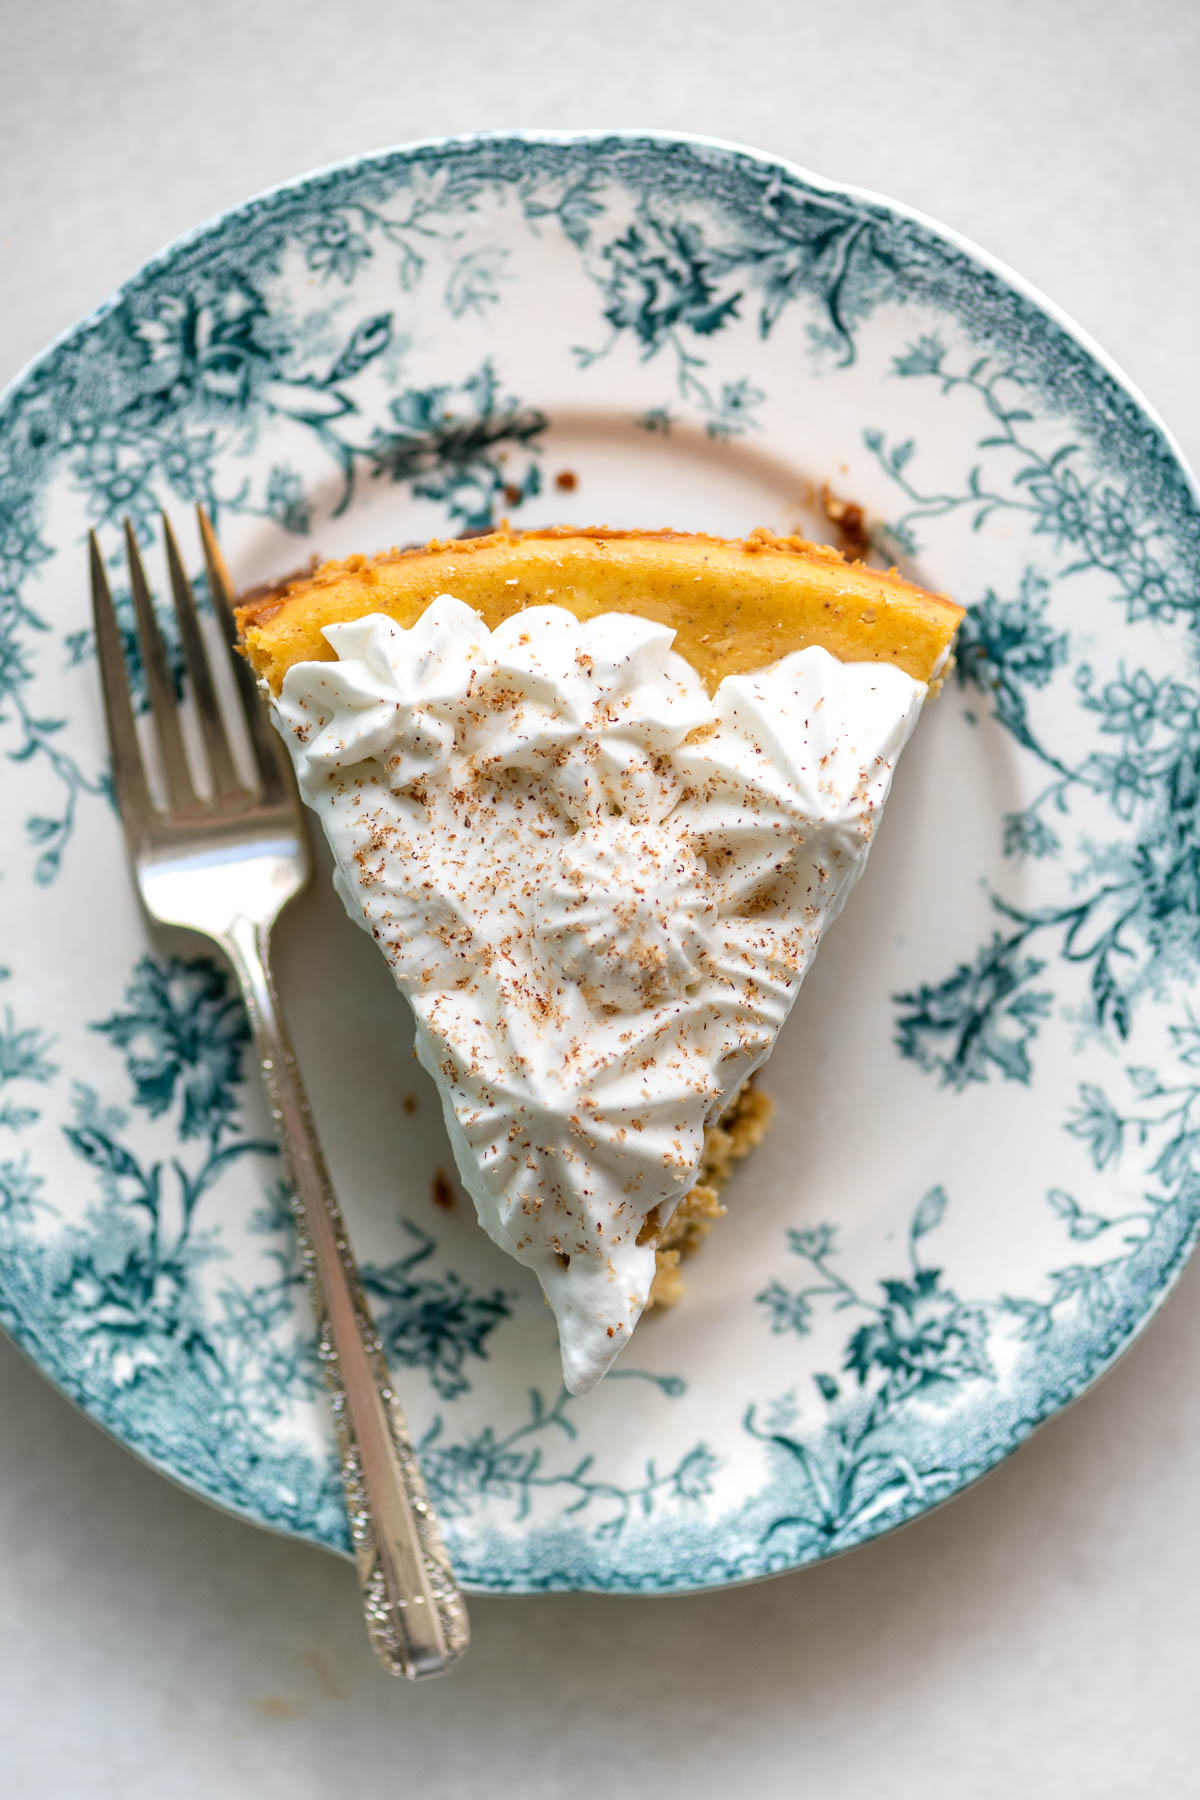 pumpkin cheesecake with piped whipped cream topping